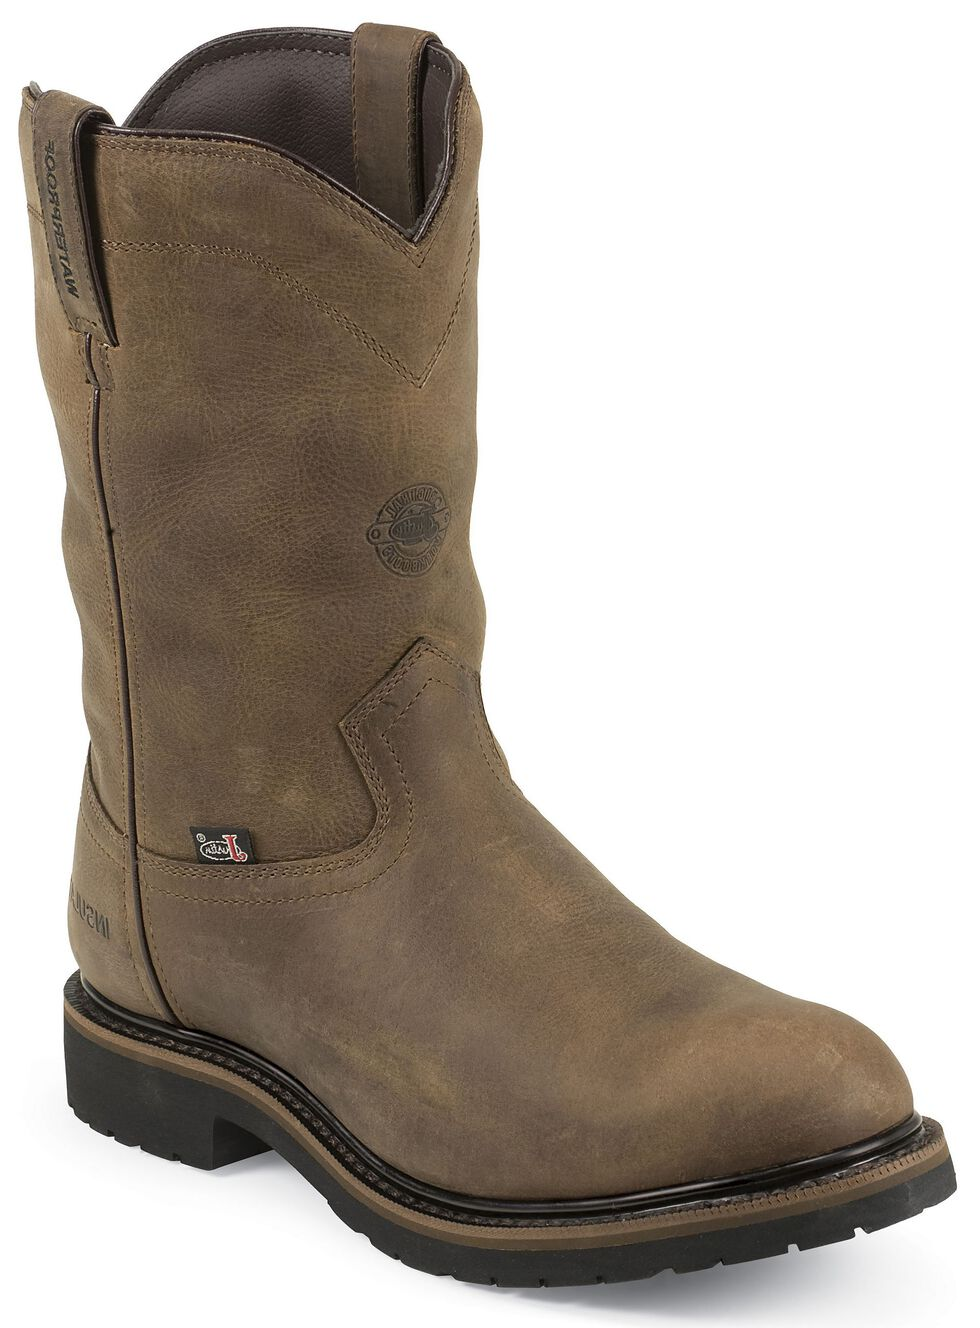 Justin Men's Drywall Insulated Waterproof Work Boots - Soft Toe, Brown, hi-res